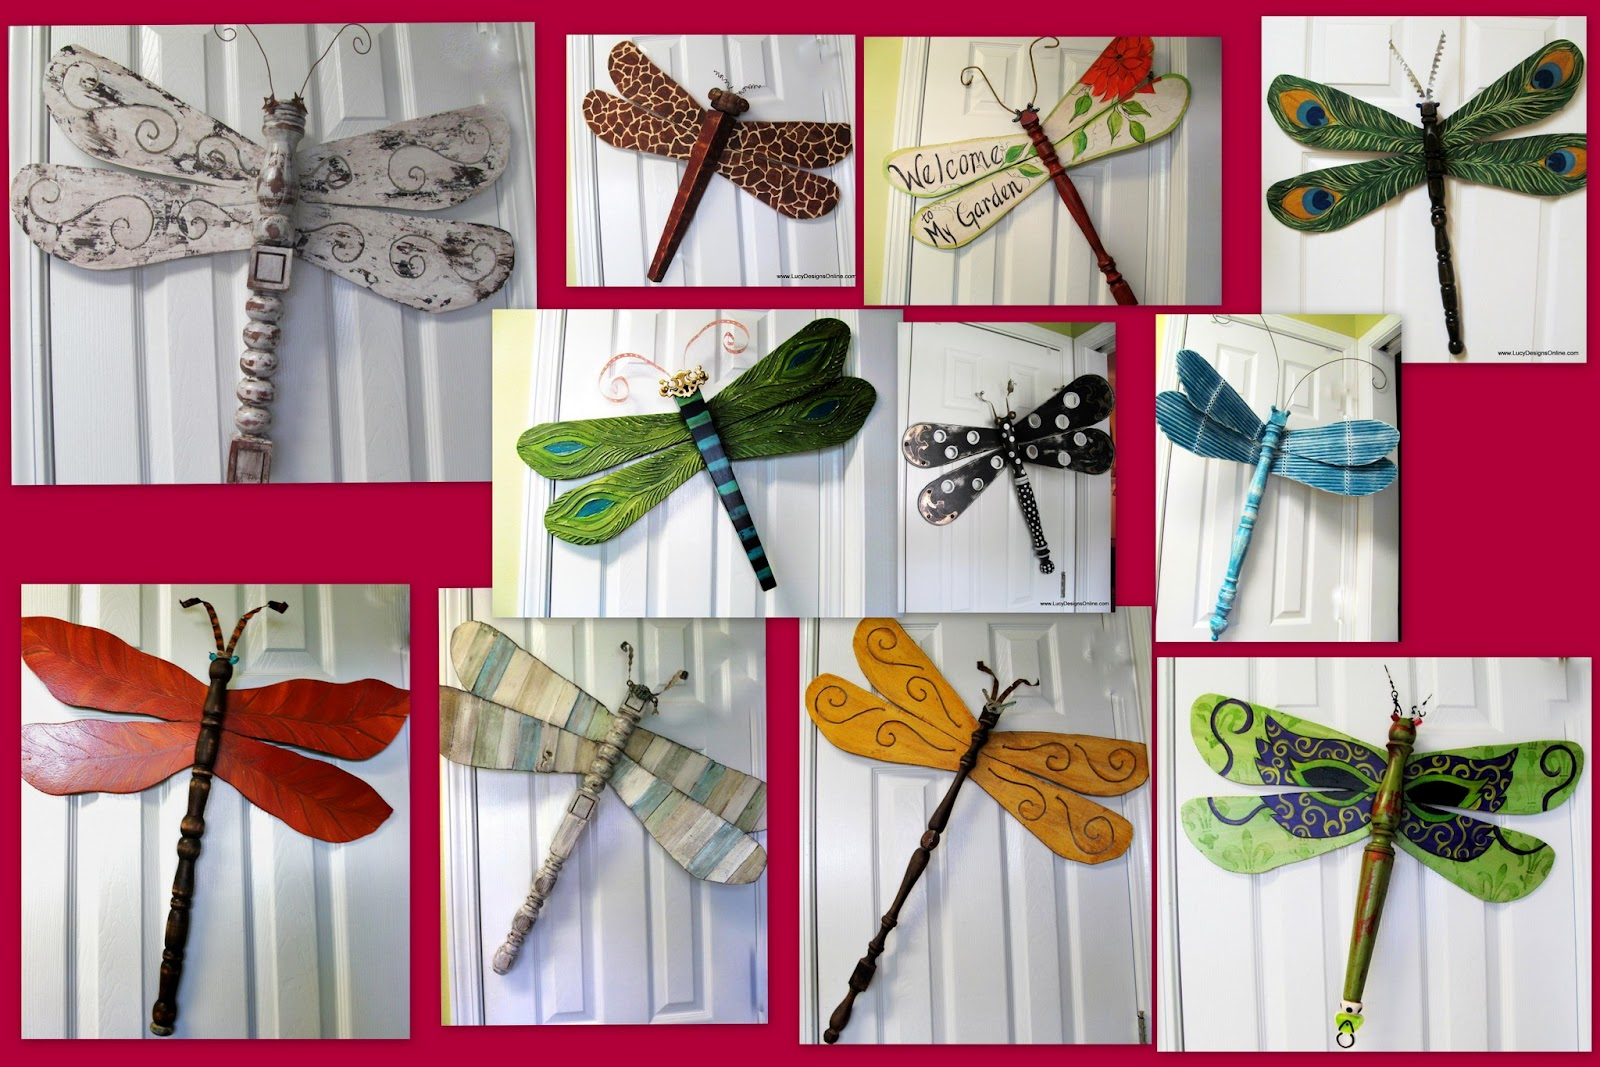 Table leg dragonflies and butterflies moving on lucy designs recycled art dragonfly aloadofball Choice Image